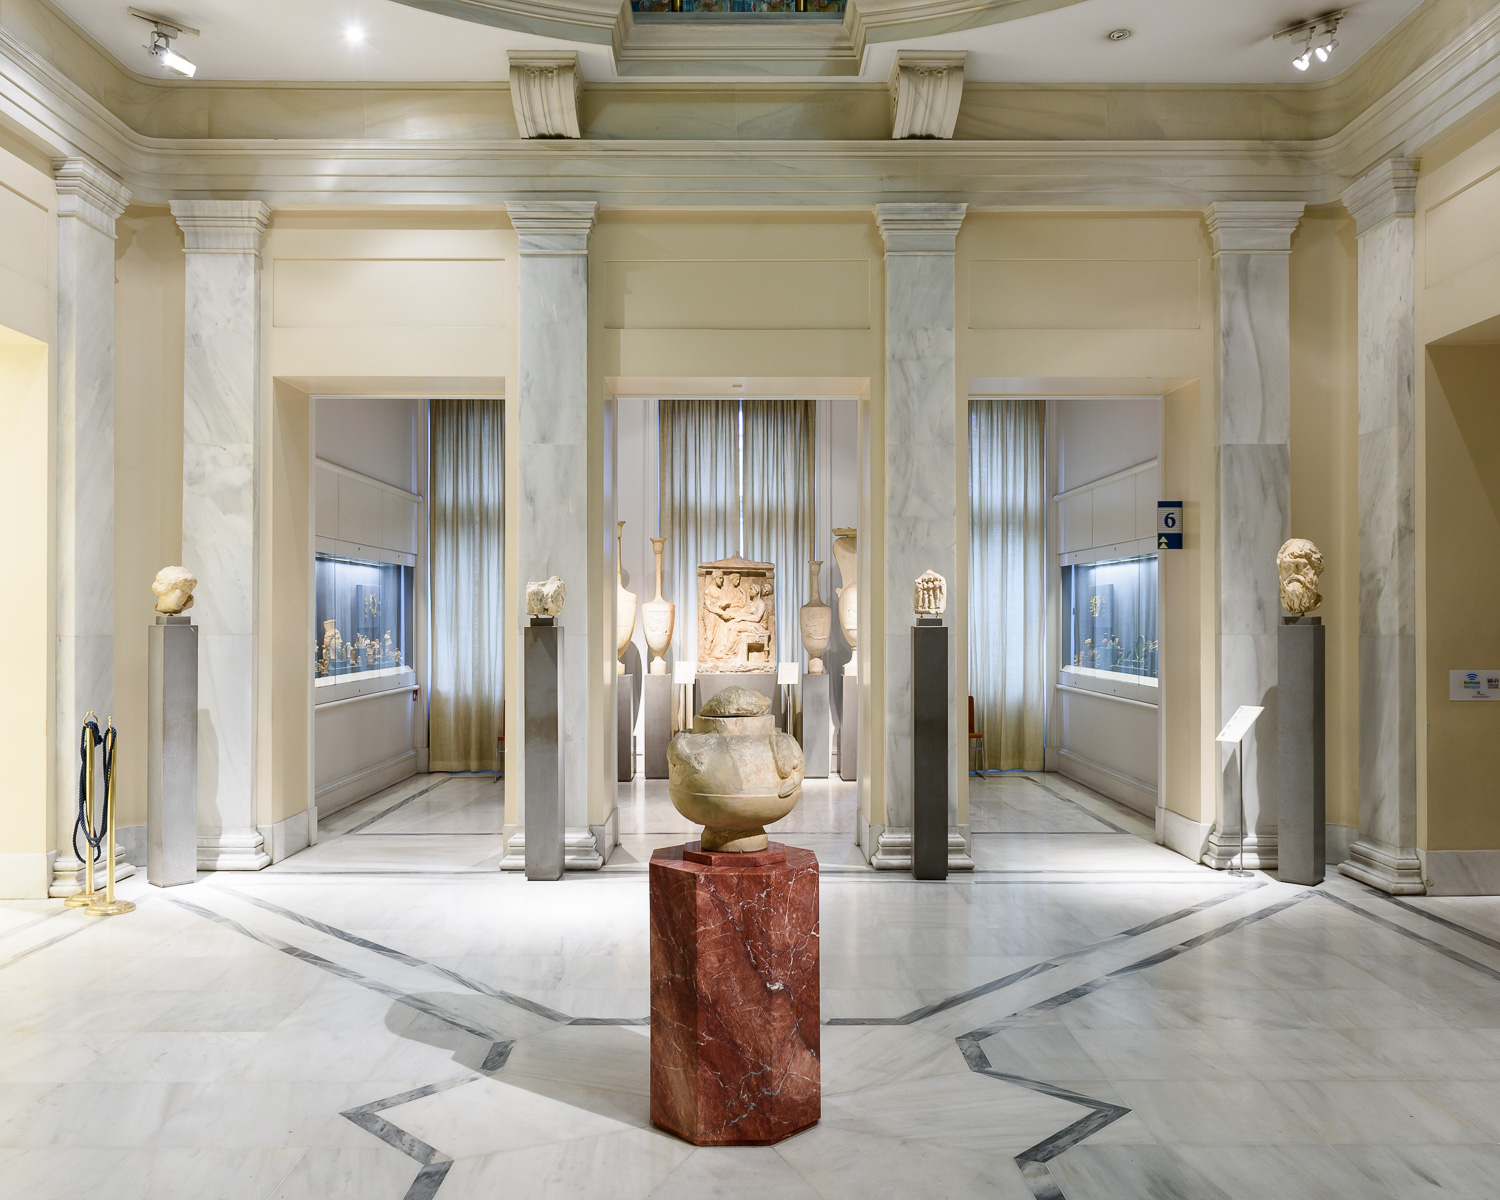 The Benaki Museum, founded in 1930. Includes Greek art from all periods.